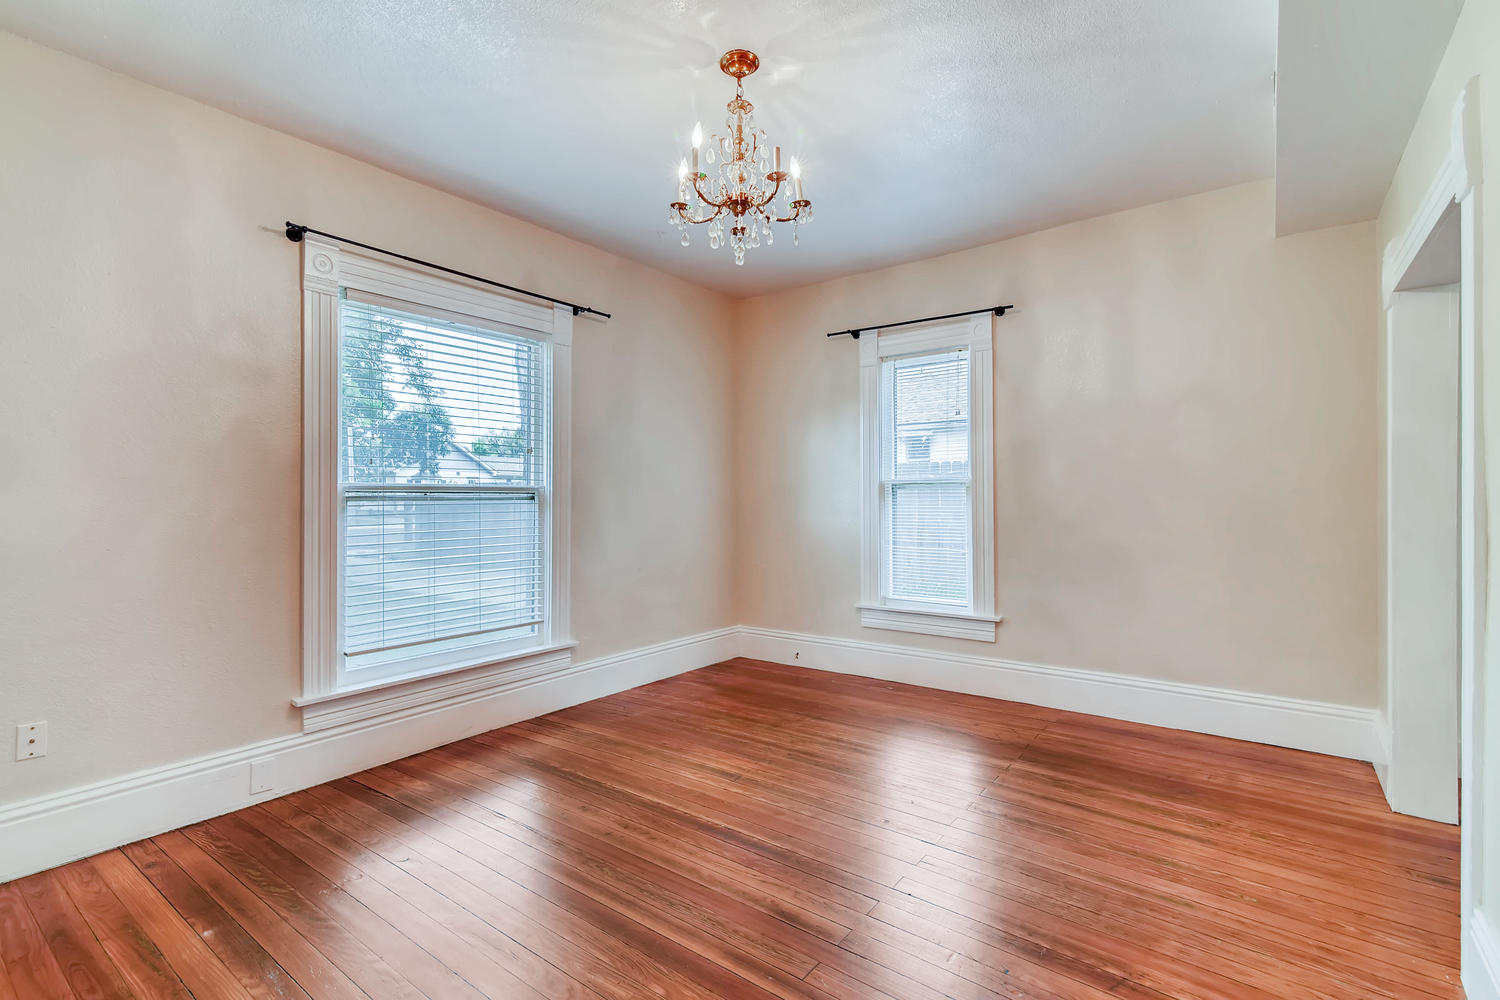 REAL ESTATE LISTING: 1201 E 1st Street Loveland CO Dining Room